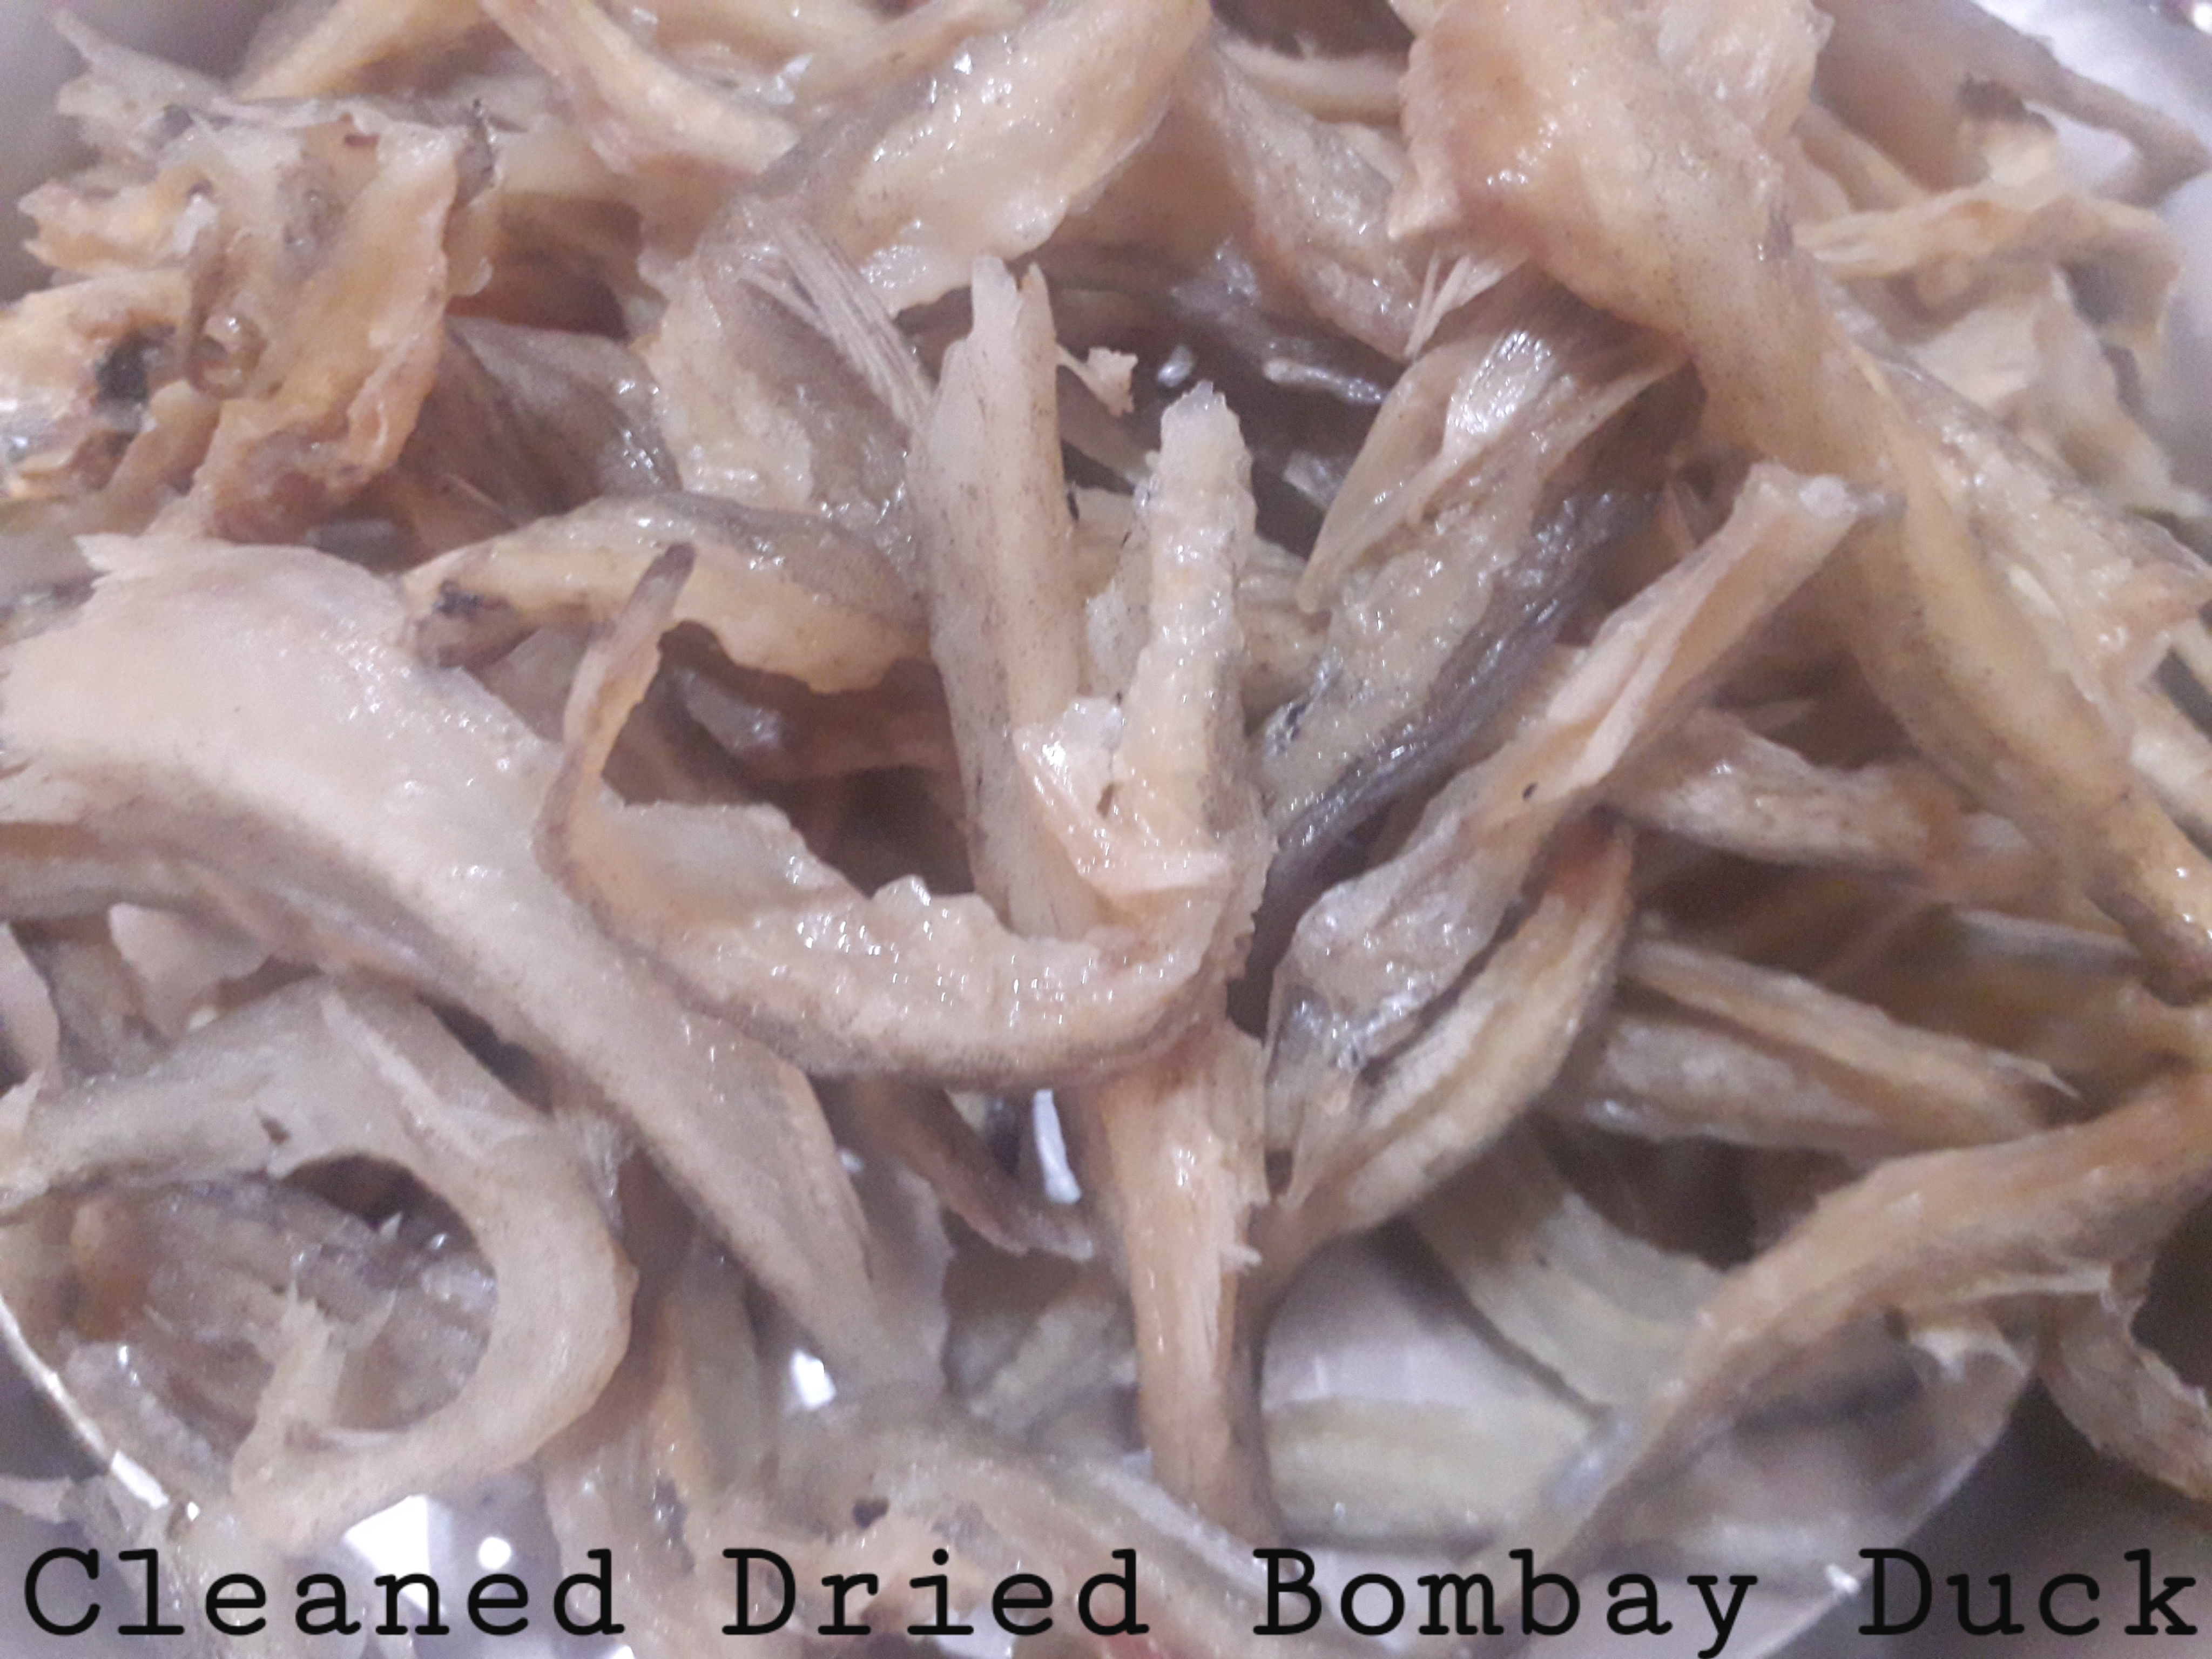 Cleaned Dried Bombay Duck